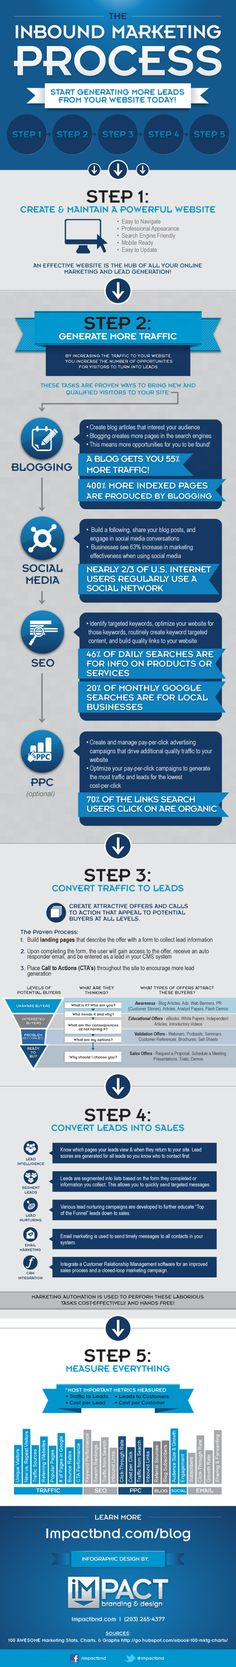 What Are The Five Steps Of The Inbound Marketing Process? #infographic